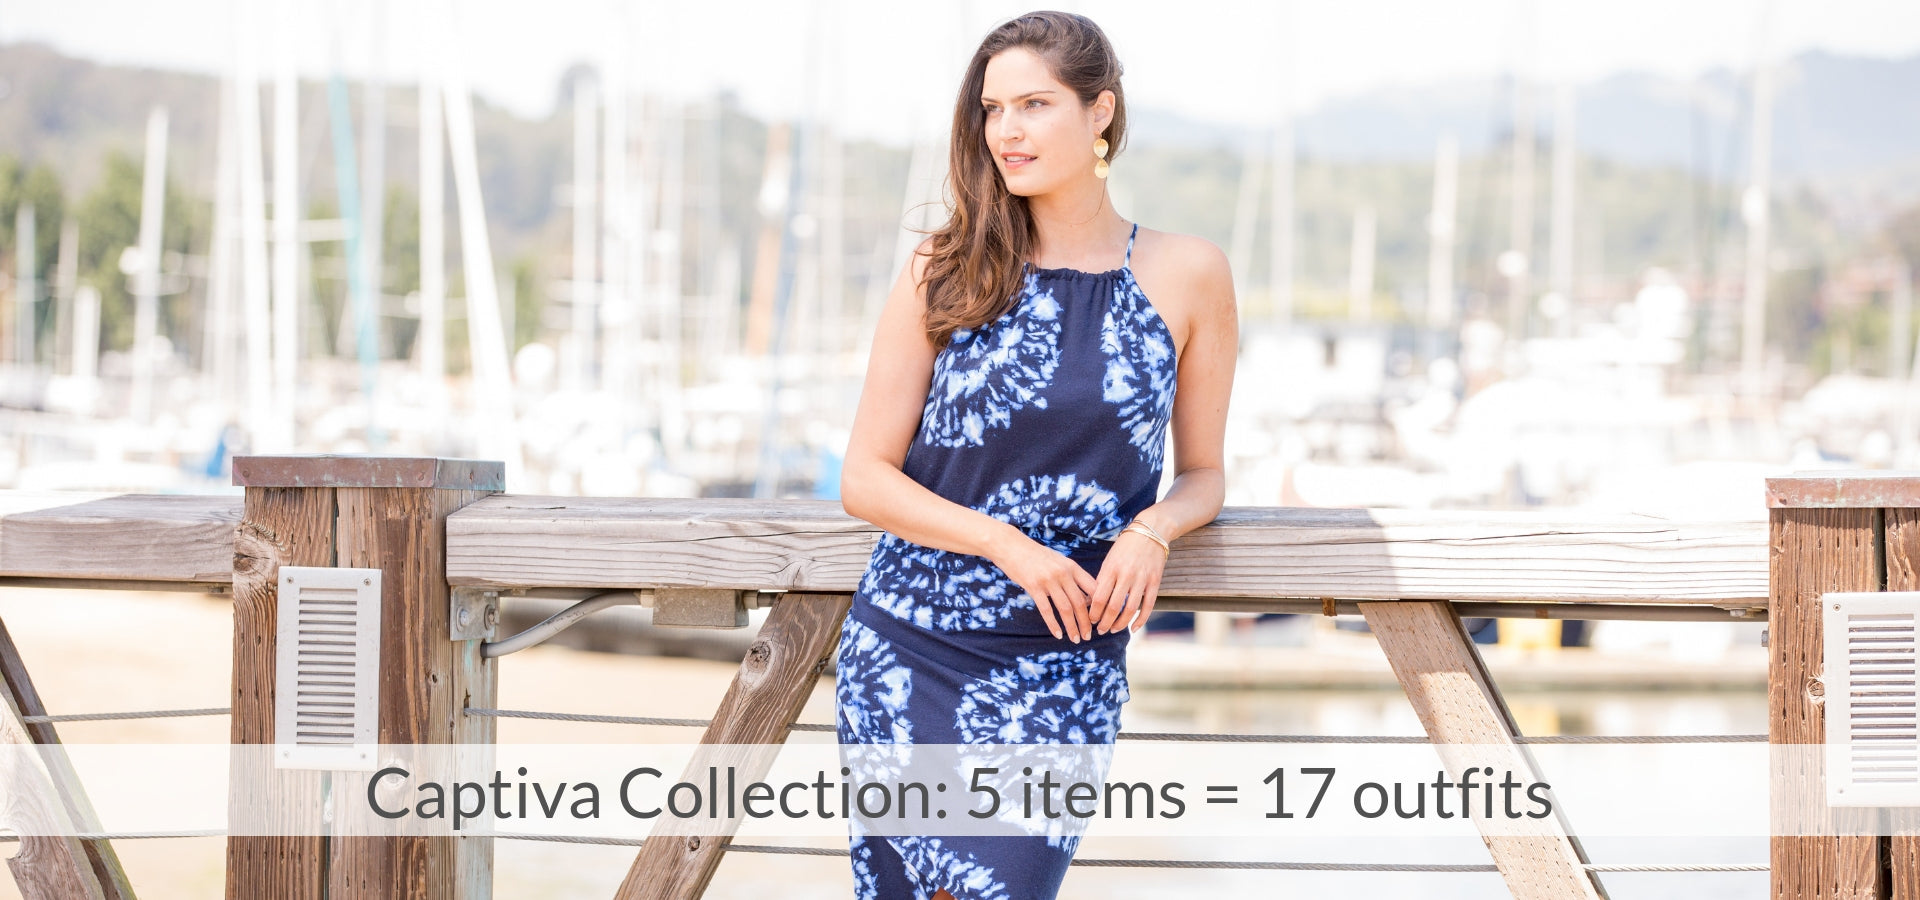 Captiva Collection: 5 items = 17 outfits